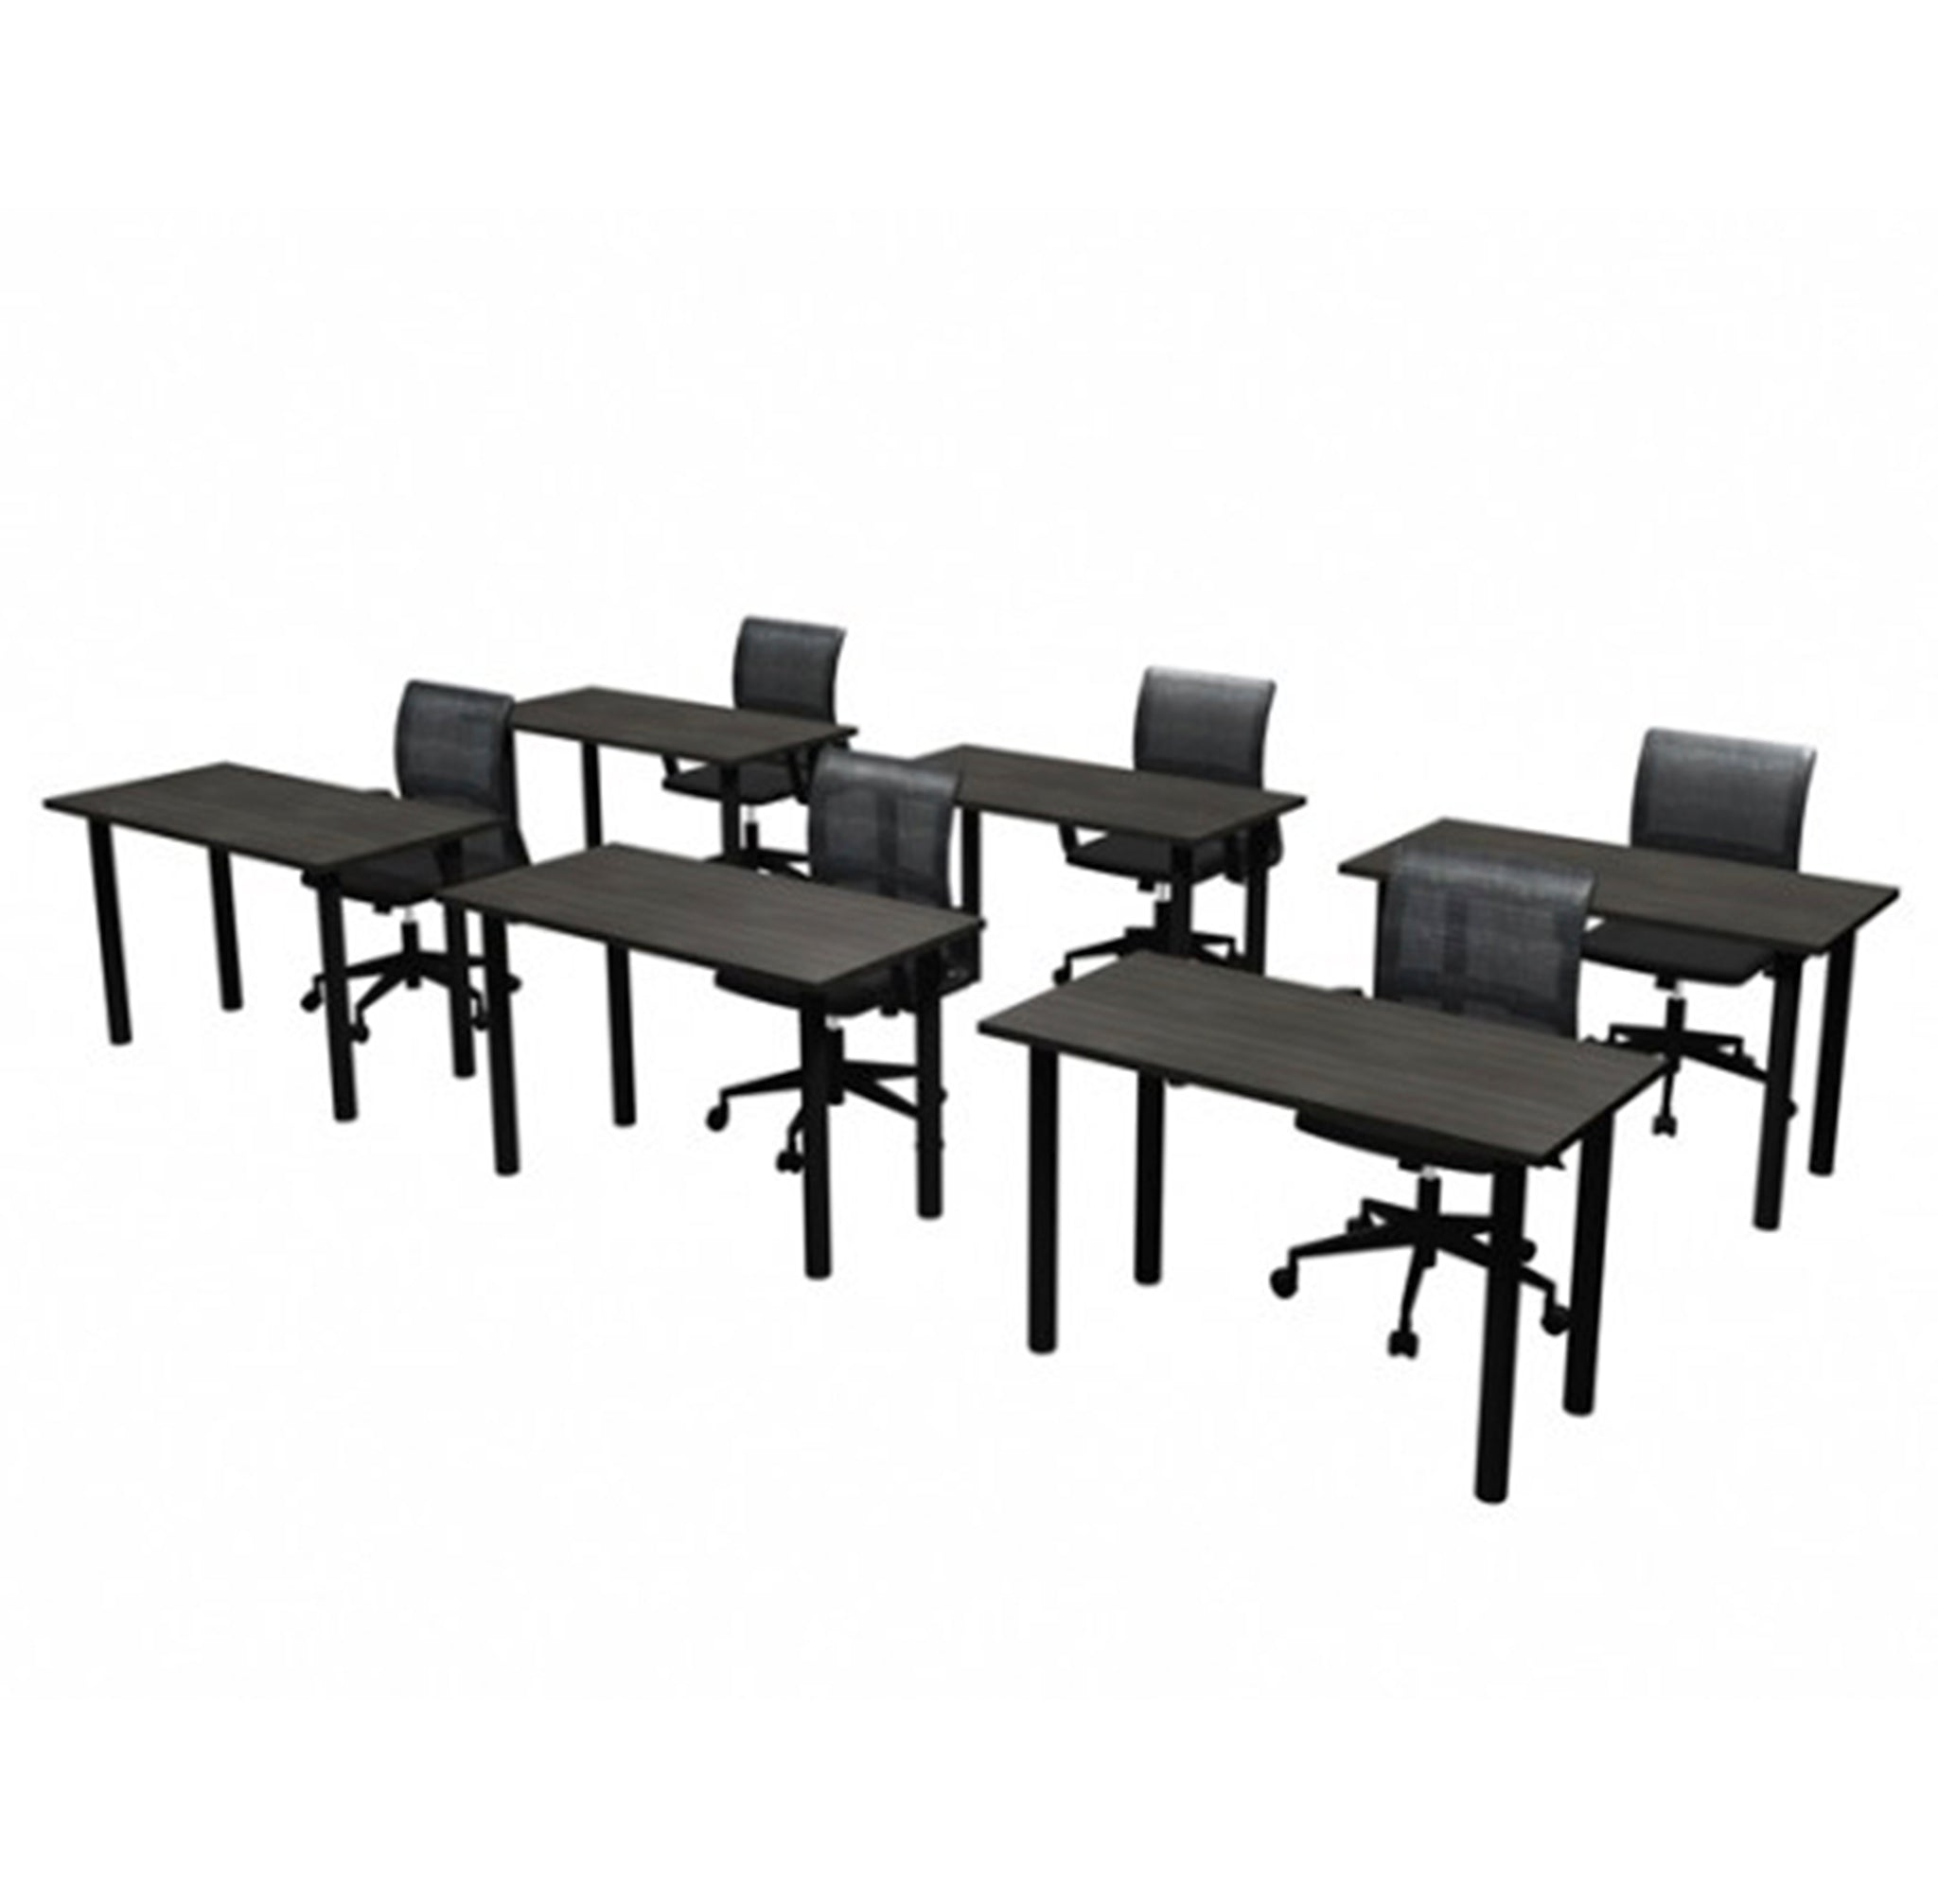 "Innovations 30 x 72"" Rectangular Table"